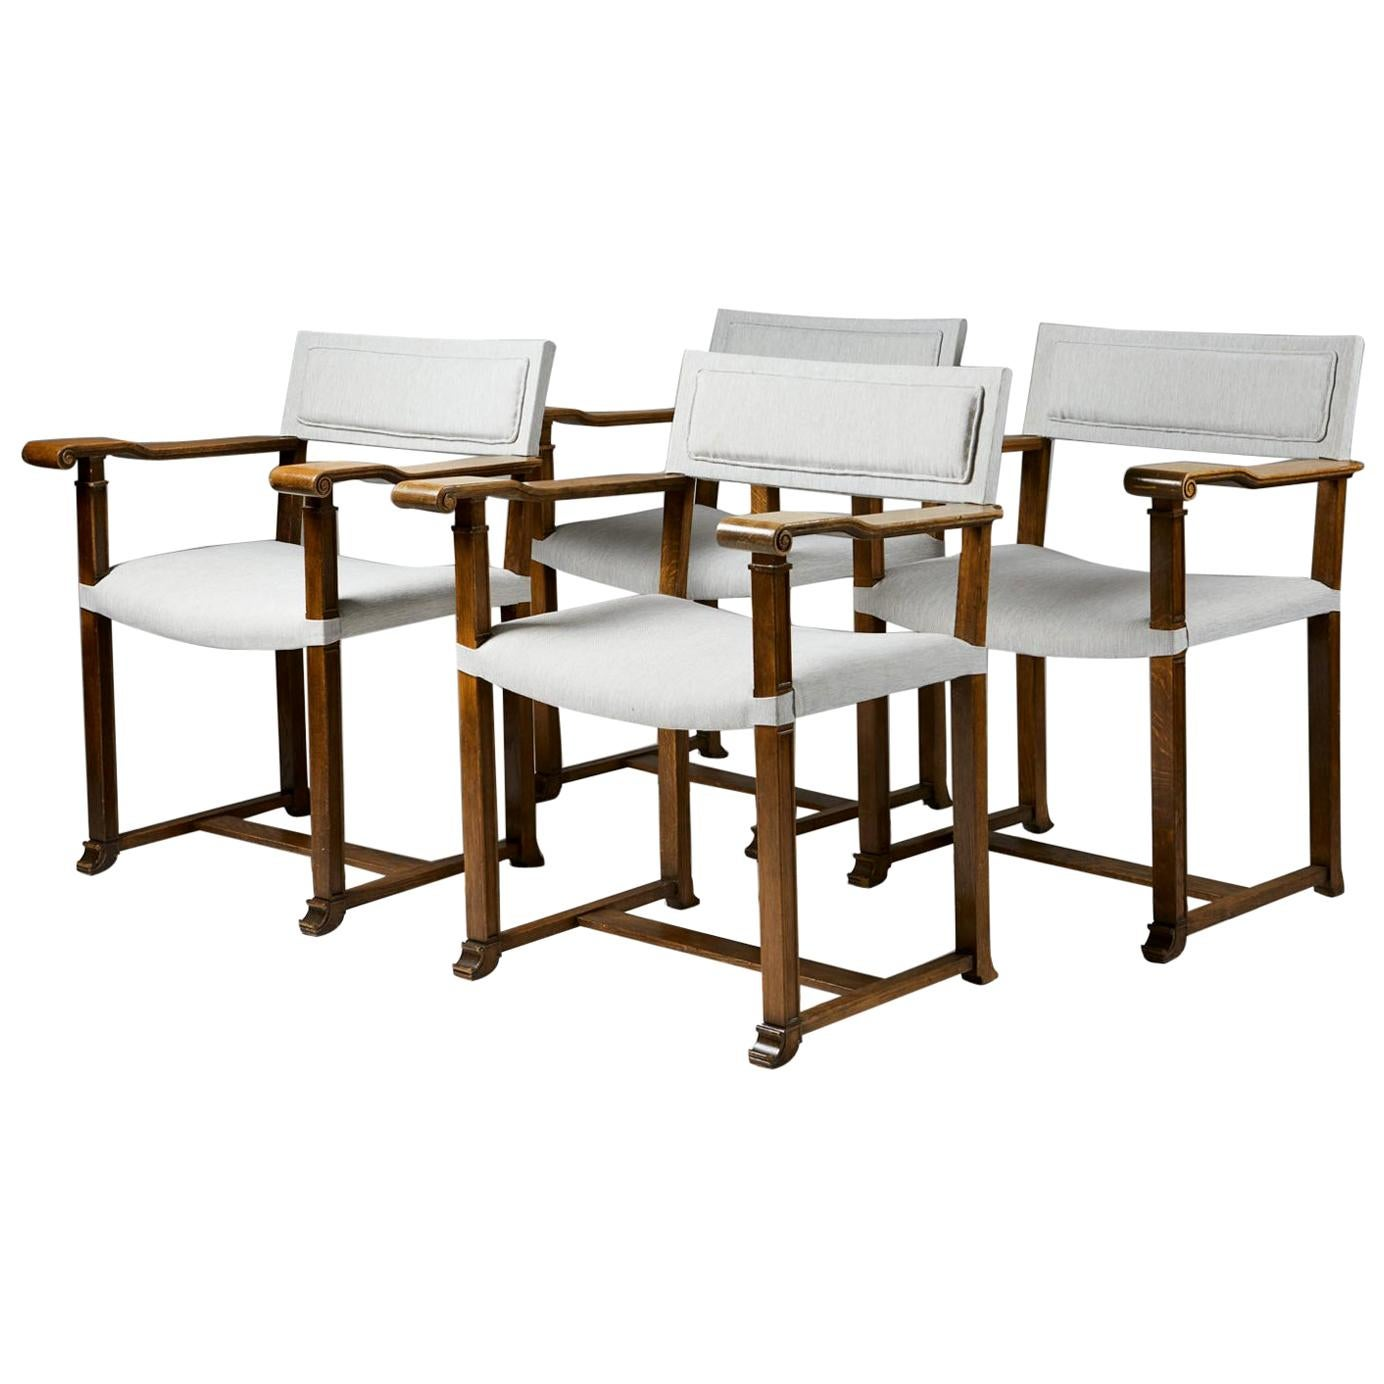 Set of Four Armchairs Designed by Carl Bergsten, Sweden, 1920s